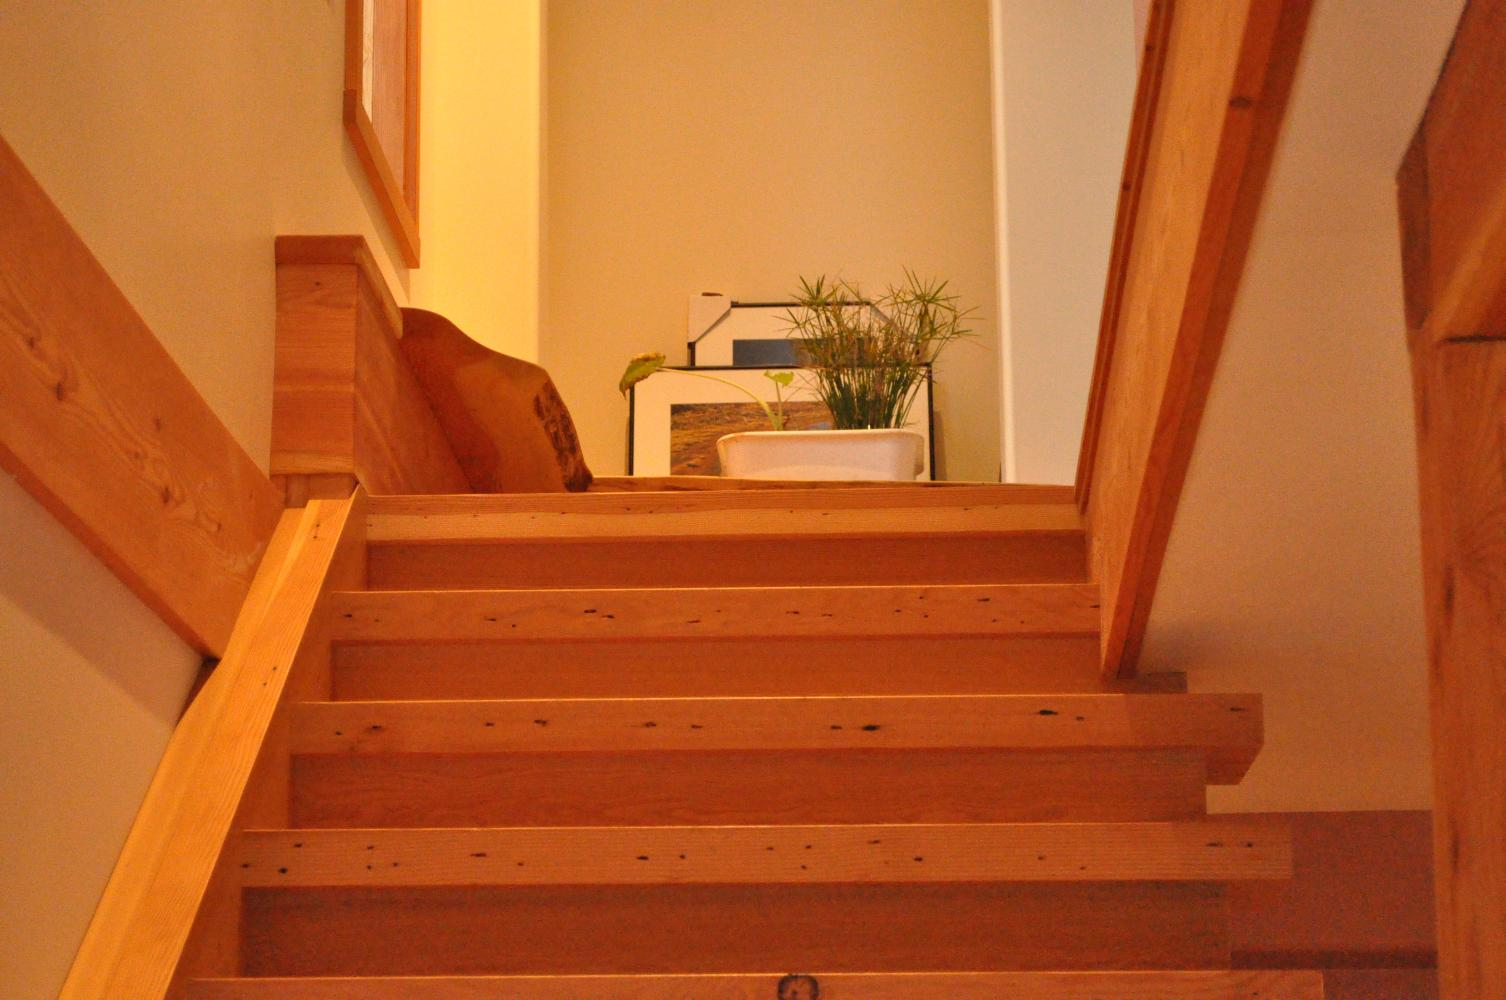 Antique Newel Posts, Rails, and Complete Stair Units.